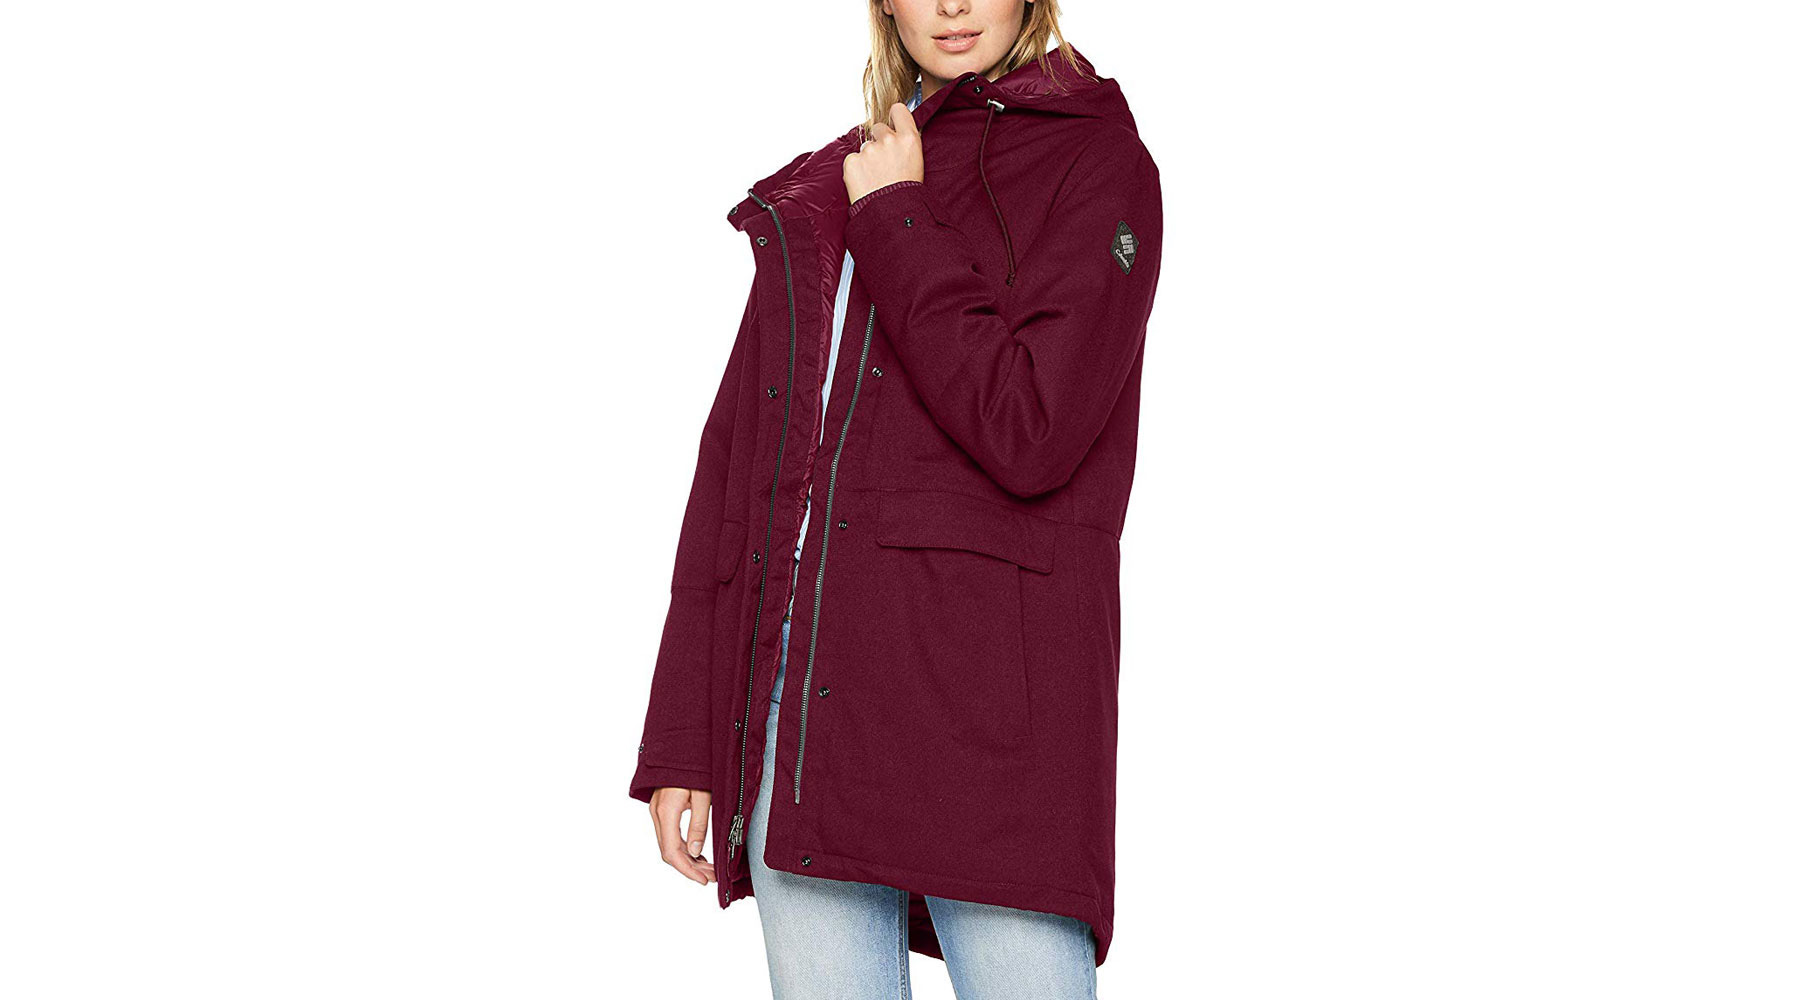 ac14a38fb23af Best Winter Coats and Jackets for Women From Amazon | Real Simple